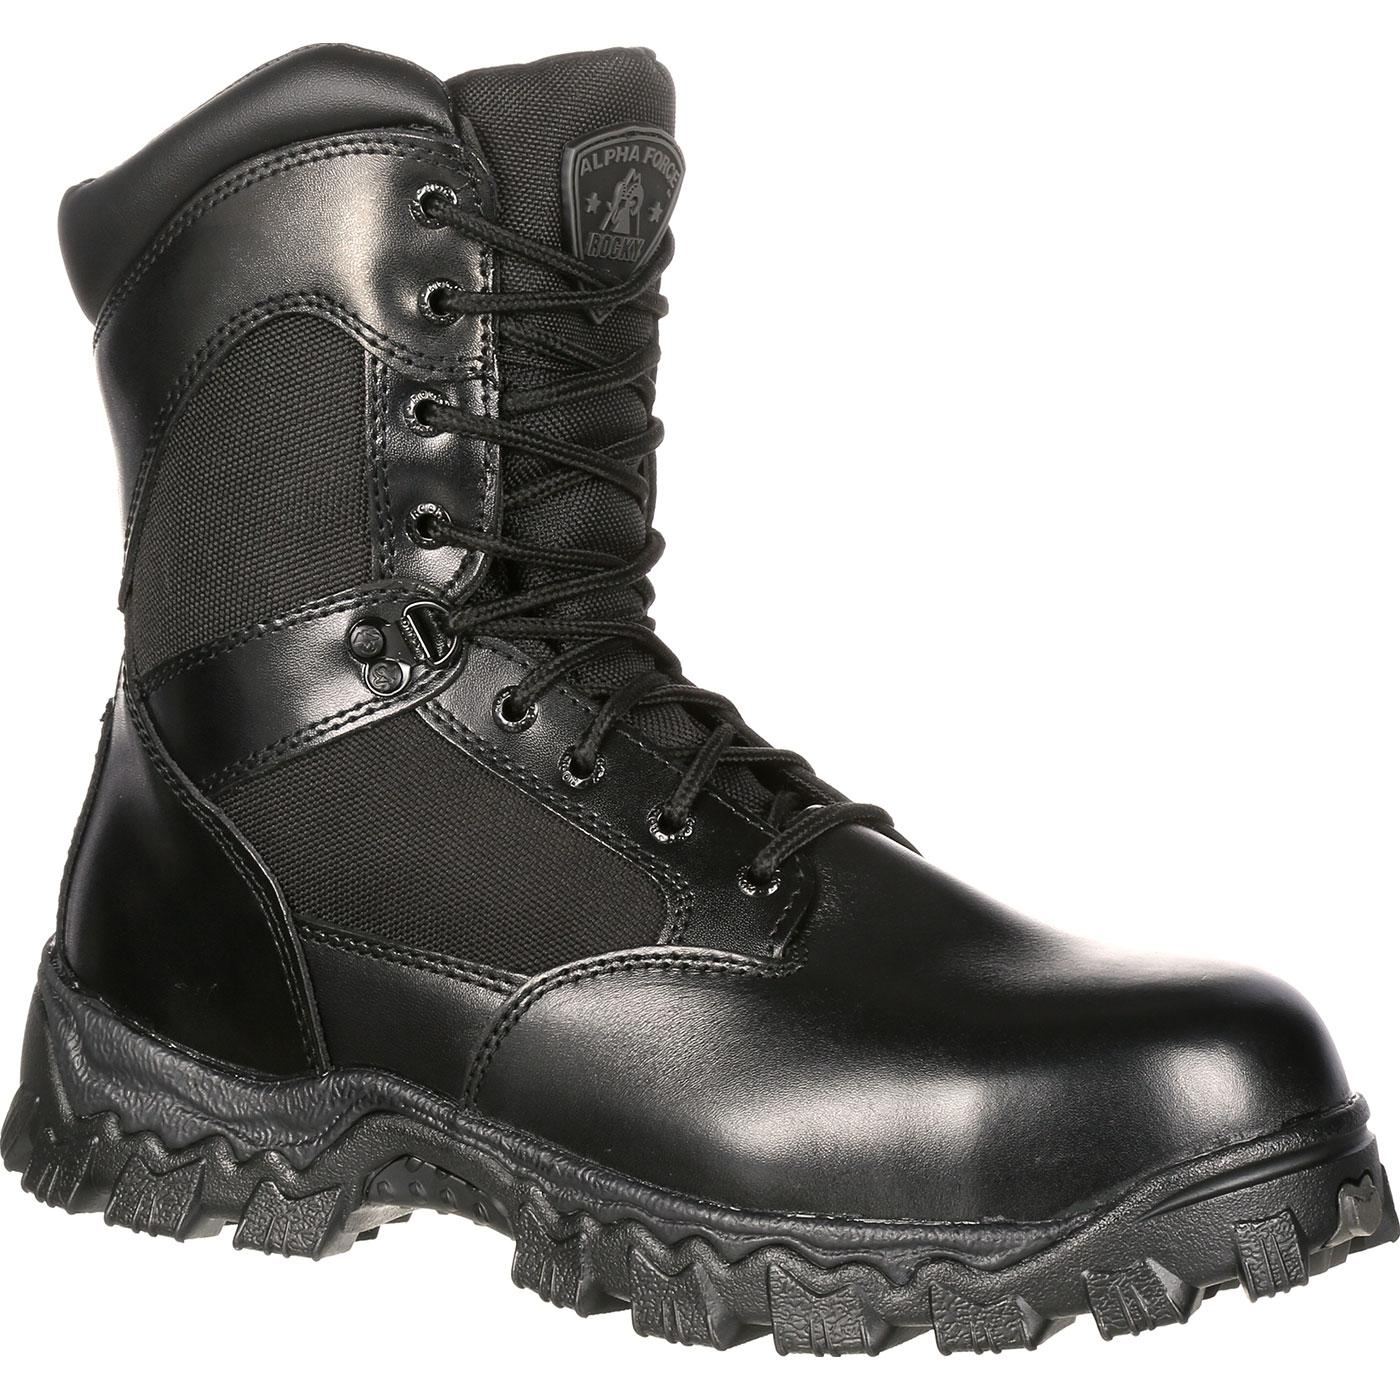 waterproof boots rocky alphaforce zipper waterproof duty boot, , large hwqvrts